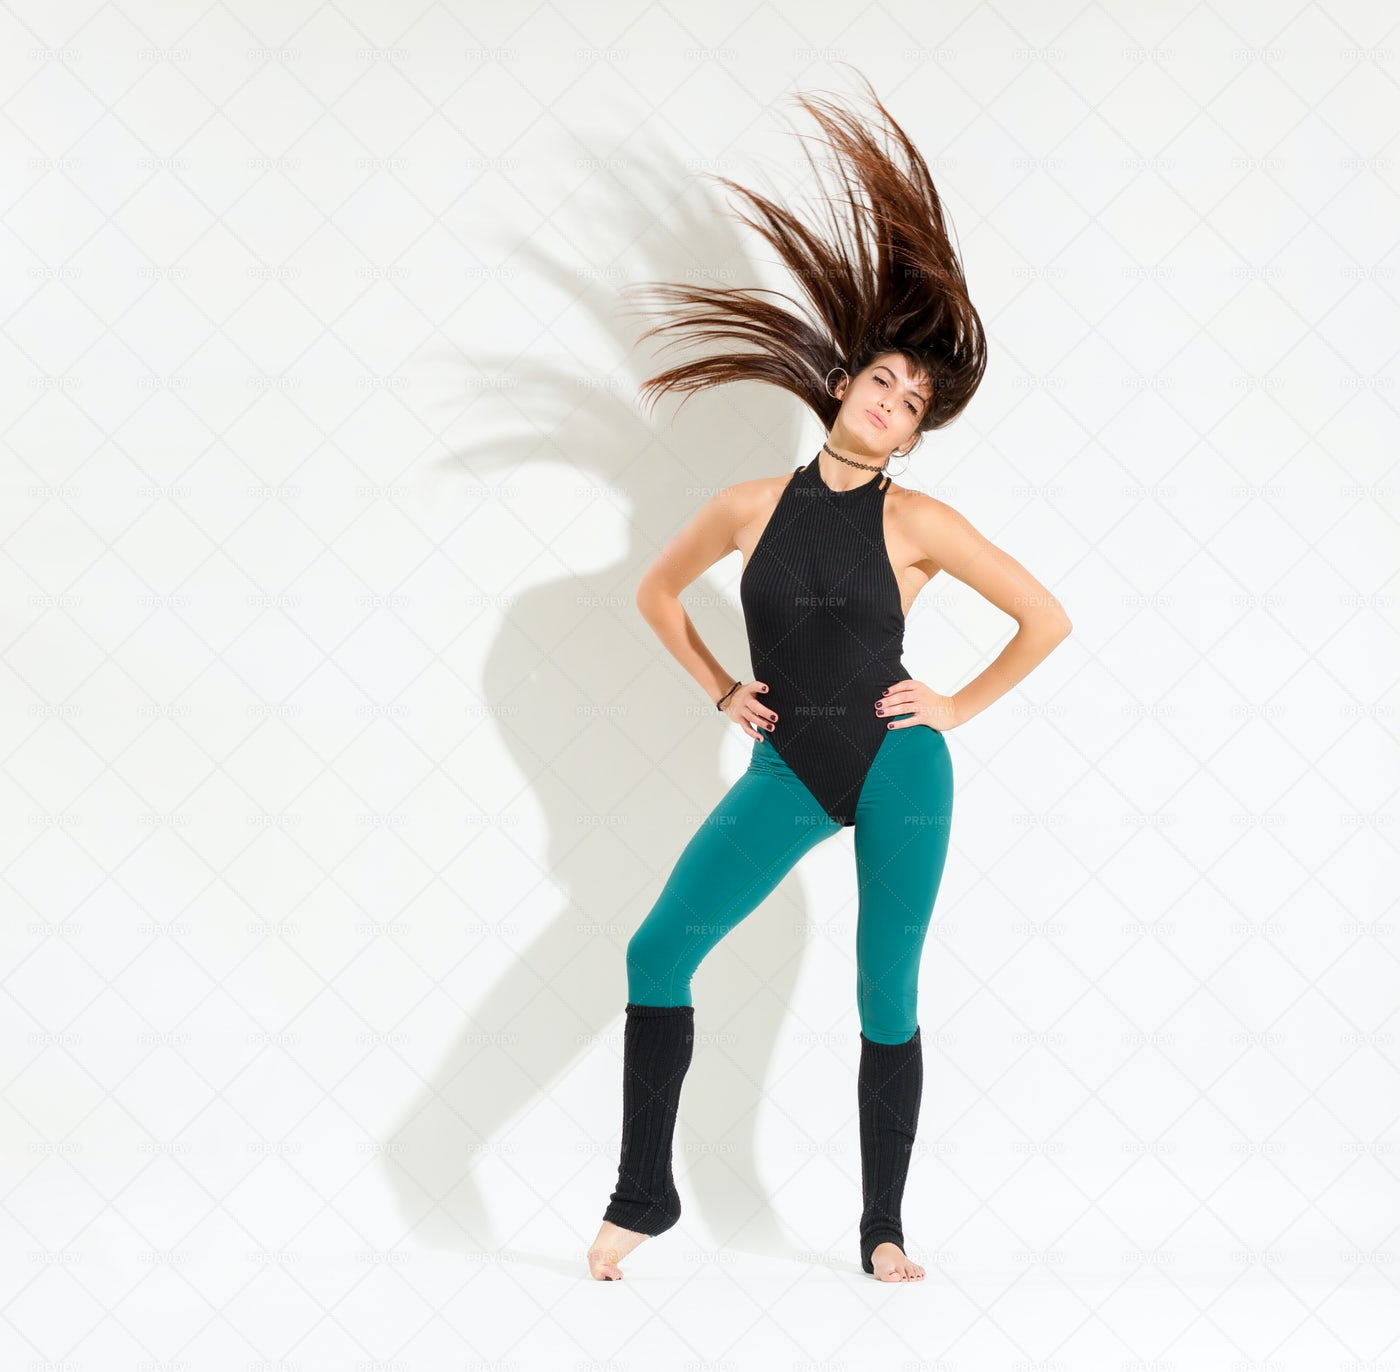 Young Dancer In An 80s Outfit: Stock Photos